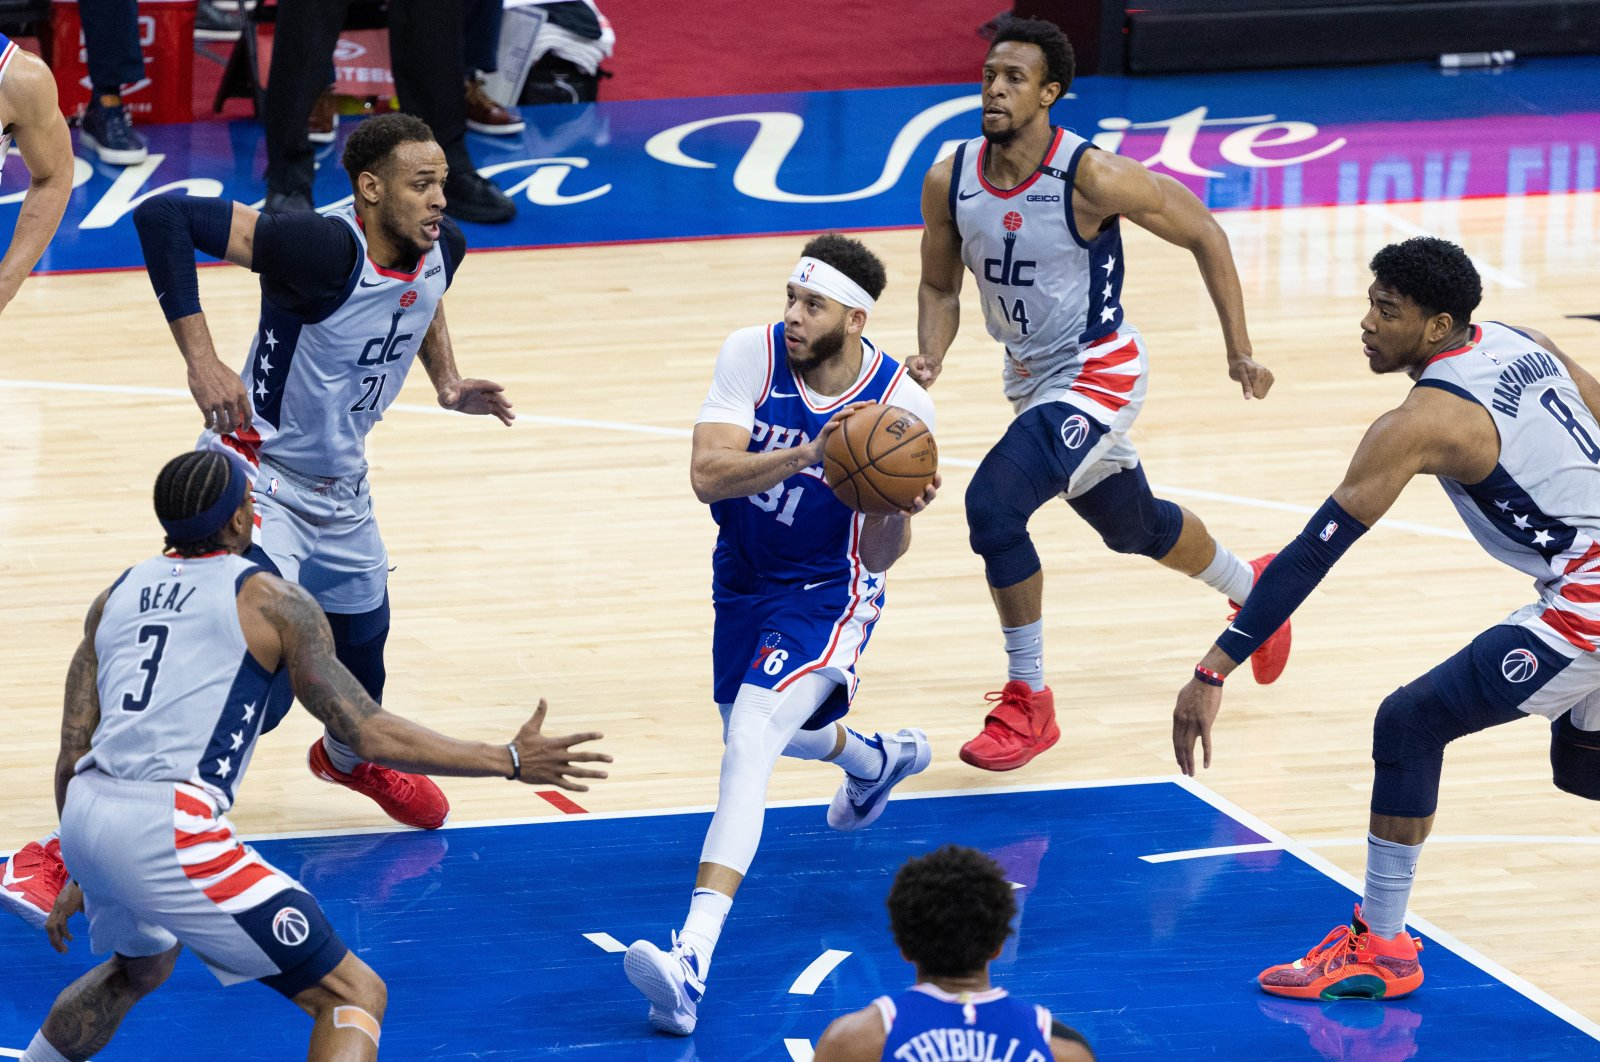 Philadelphia 76ers guard Seth Curry (C) drives for a shot against Washington Wizards guard Bradley Beal (L) and center Daniel Gafford (2nd L) during game five of their first-round NBA Playoffs at Wells Fargo Center, Philadelphia, Pennsylvania, U.S., June 2, 2021.